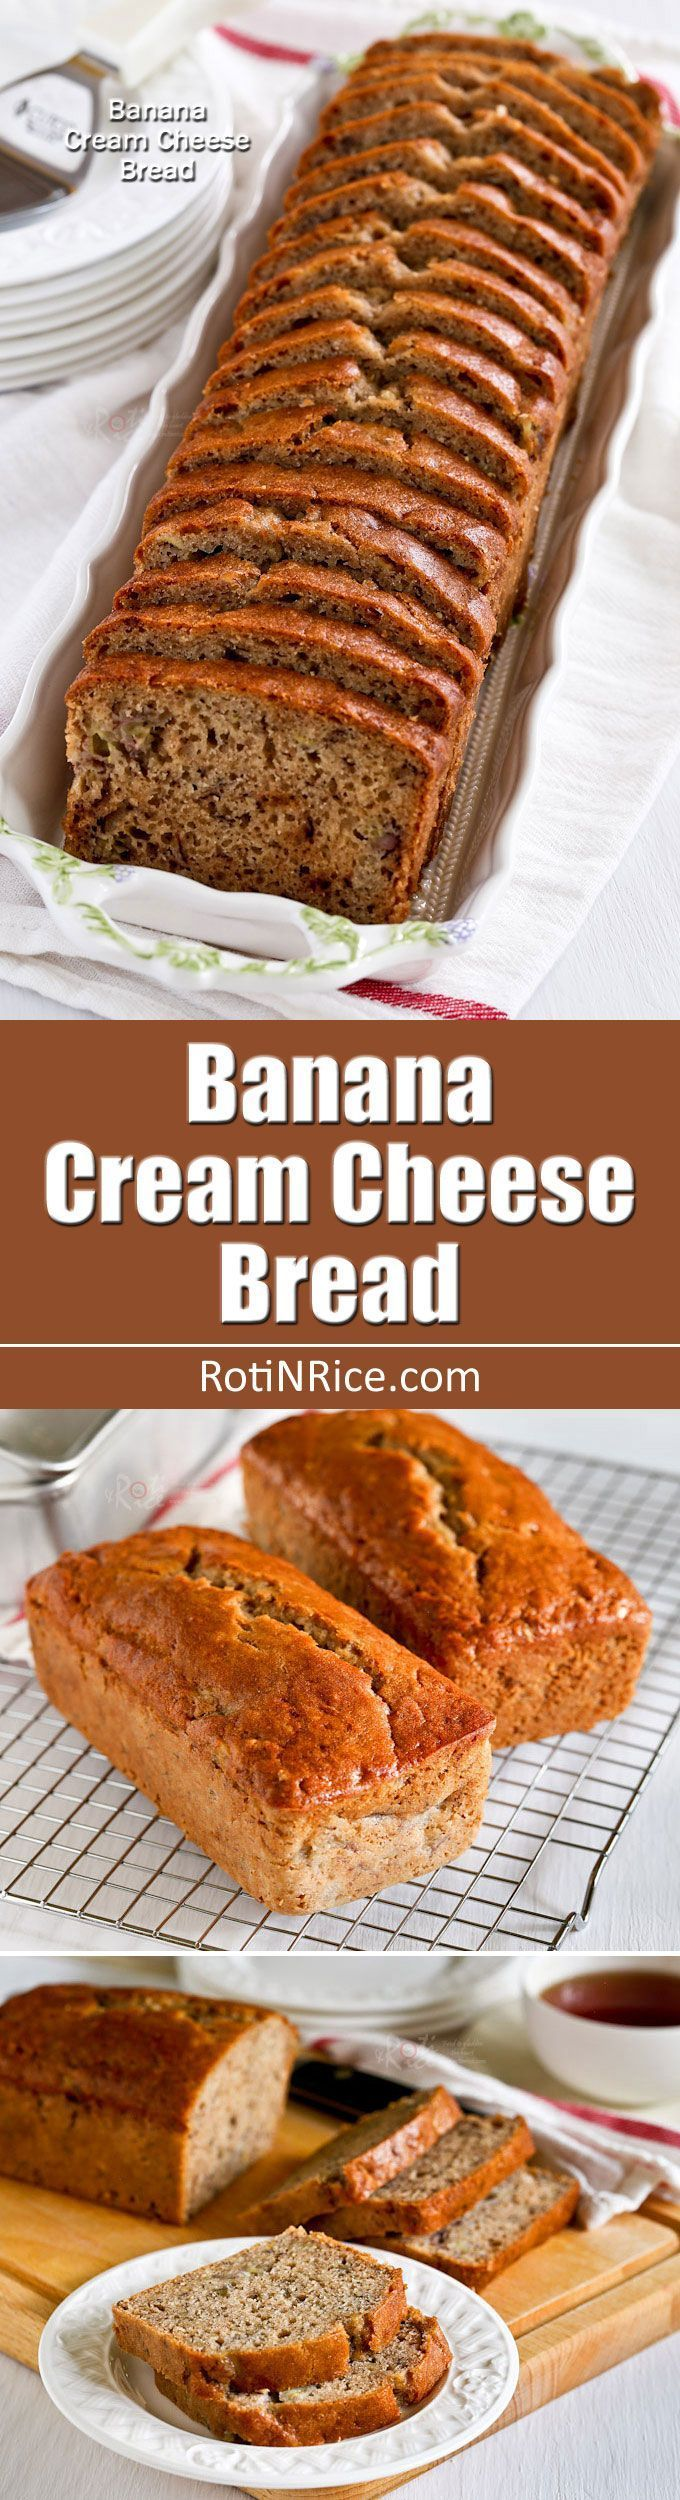 Cream cheese gives this Banana Cream Cheese Bread an even and tender texture. Very moist and deliciously satisfying. Great any time of…